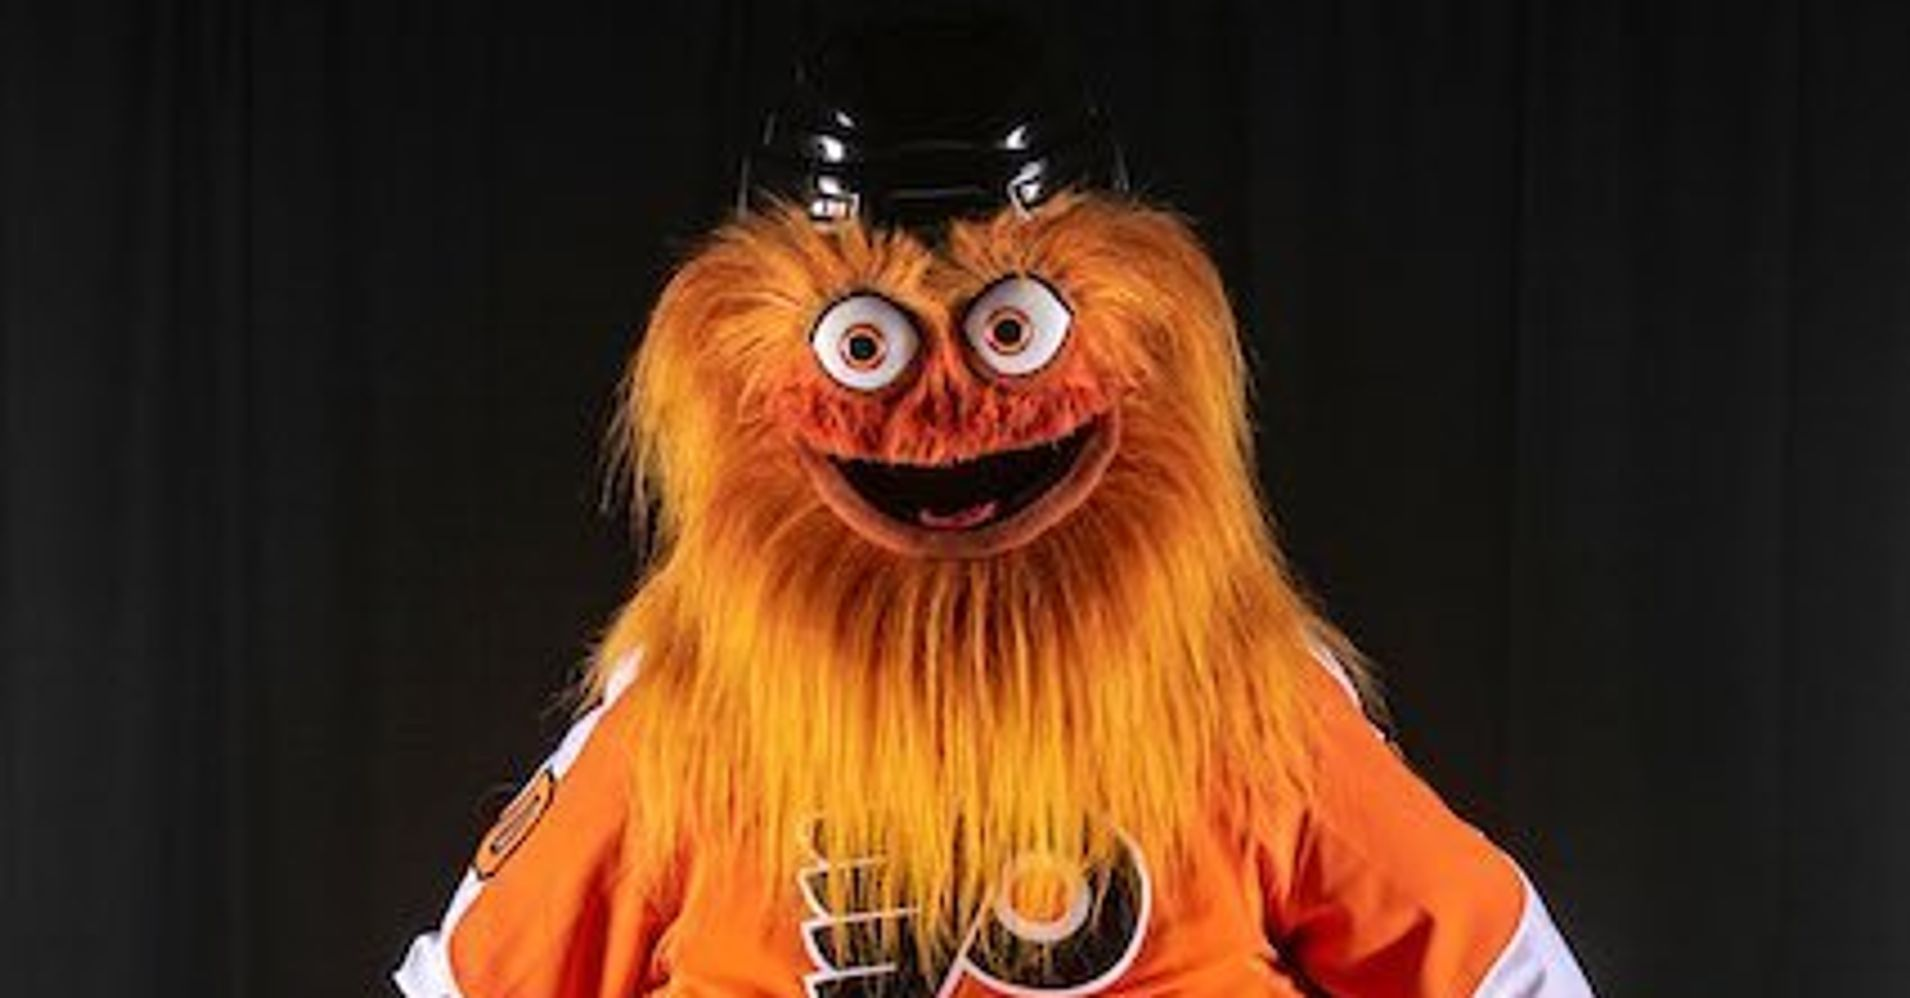 Philadelphia Flyers Get New Mascot, And Twitter Users Say 'What The Puck?' | HuffPost